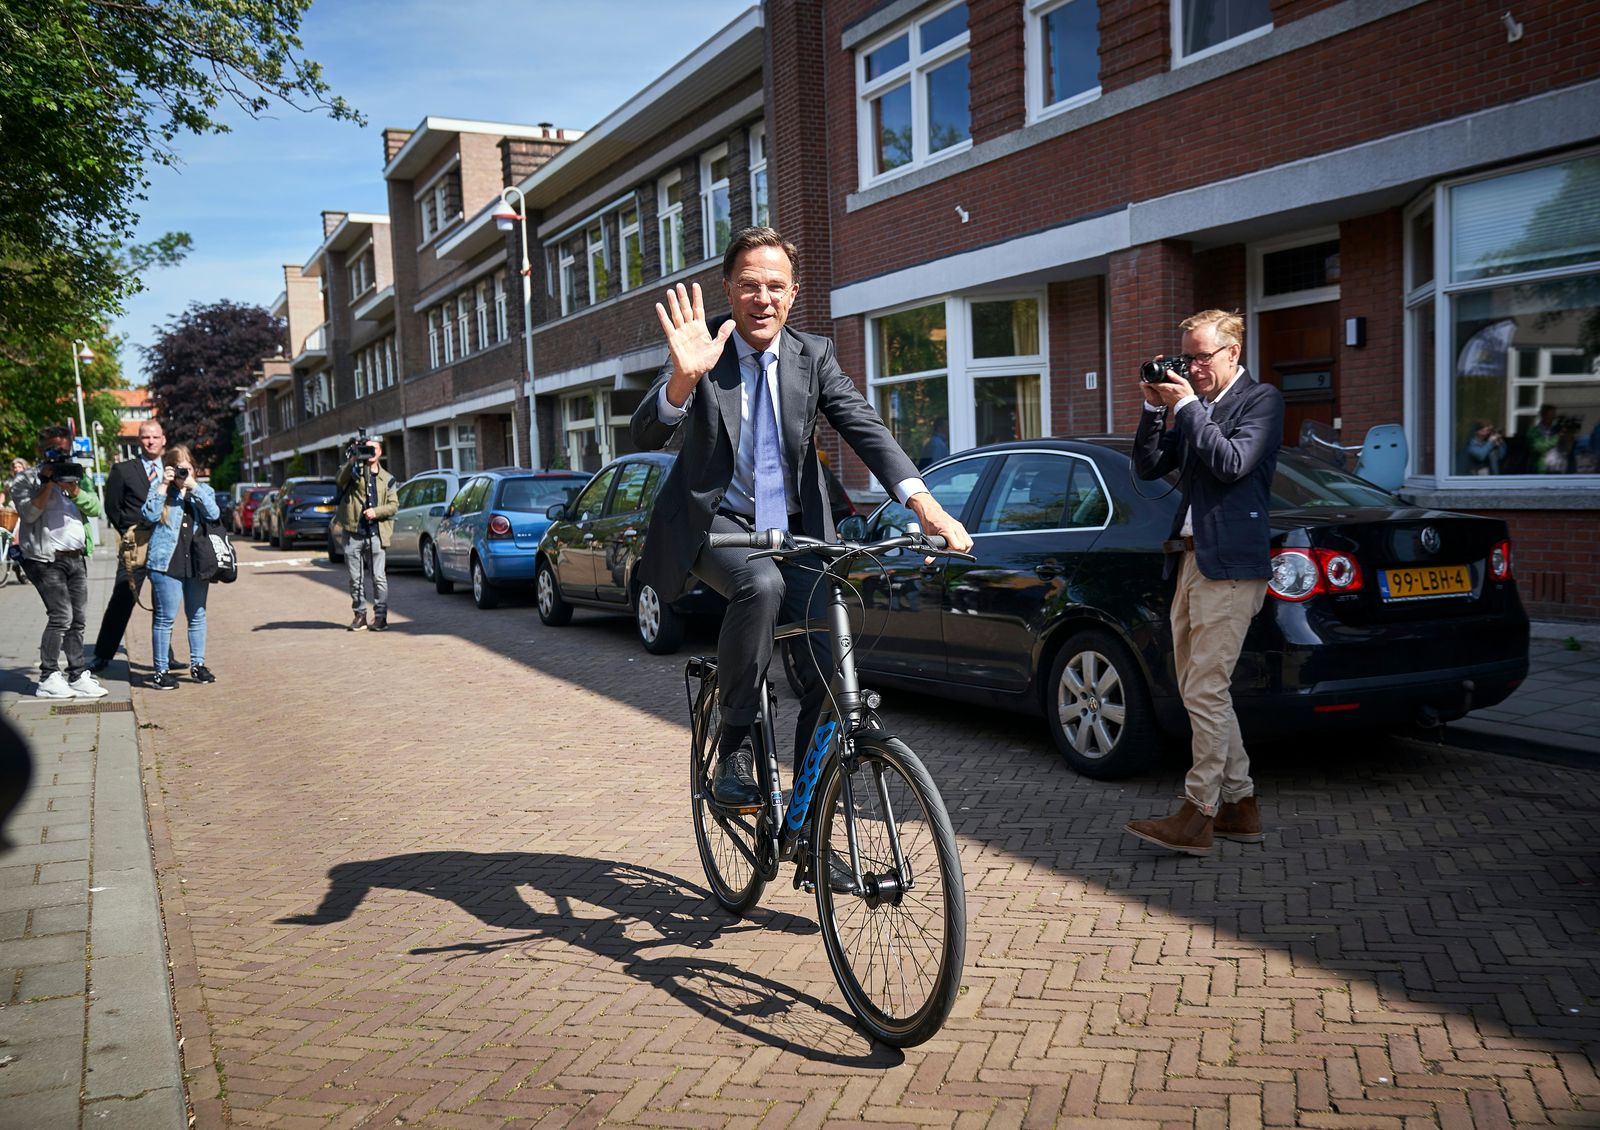 Netherlands Prime Minister Mark Rutte leaves on his bicycle after voting in the European elections in The Hague, Netherlands, Thursday, May 23, 2019. (AP Photo/Phil Nijhuis)